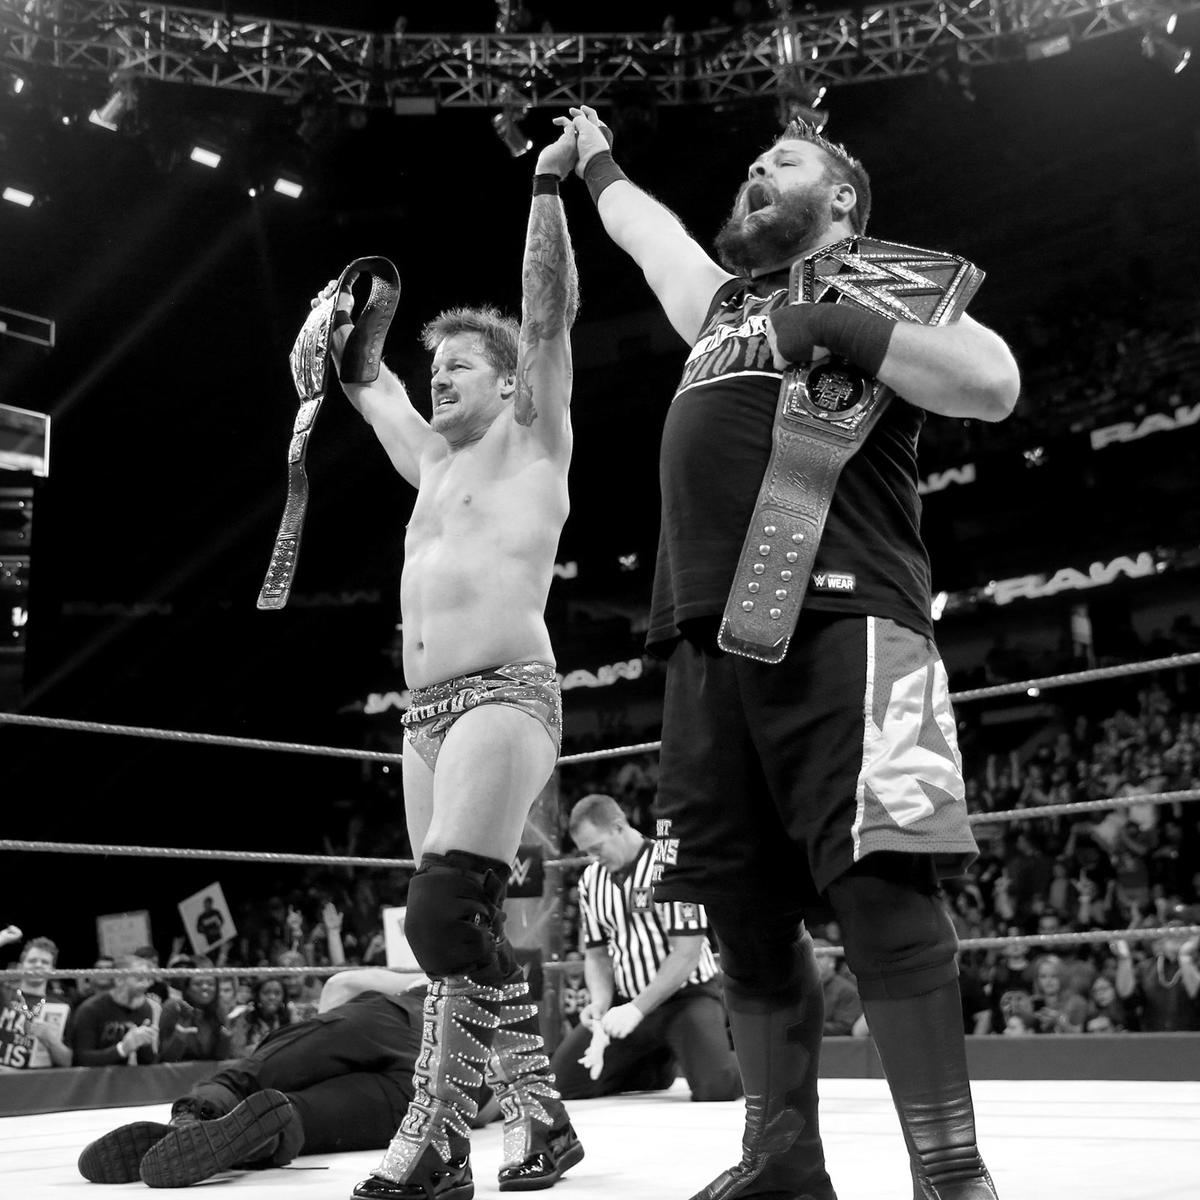 Jericho stands tall as the new U.S. Champion.